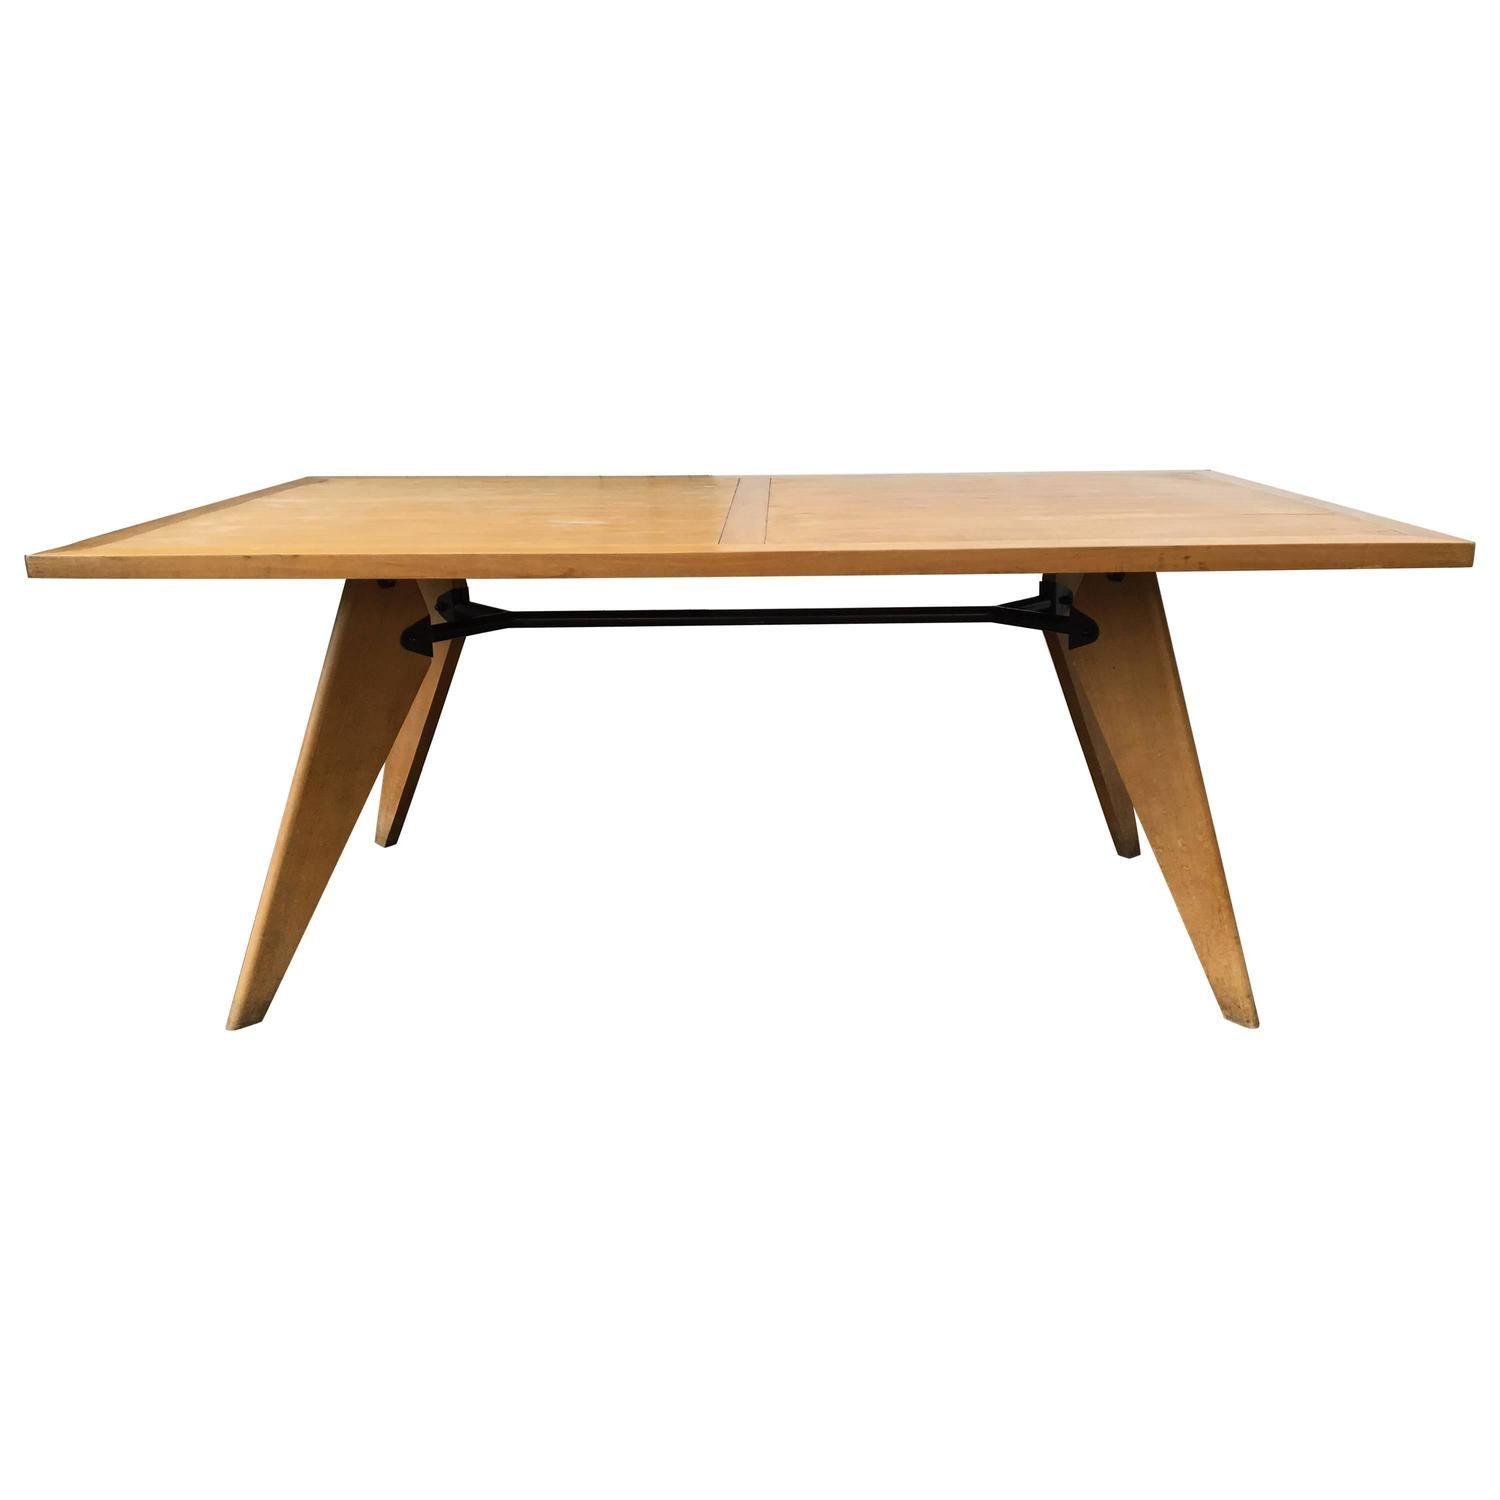 Jean prouve dining table france 1950s for sale at 1stdibs - Table basse jean prouve ...